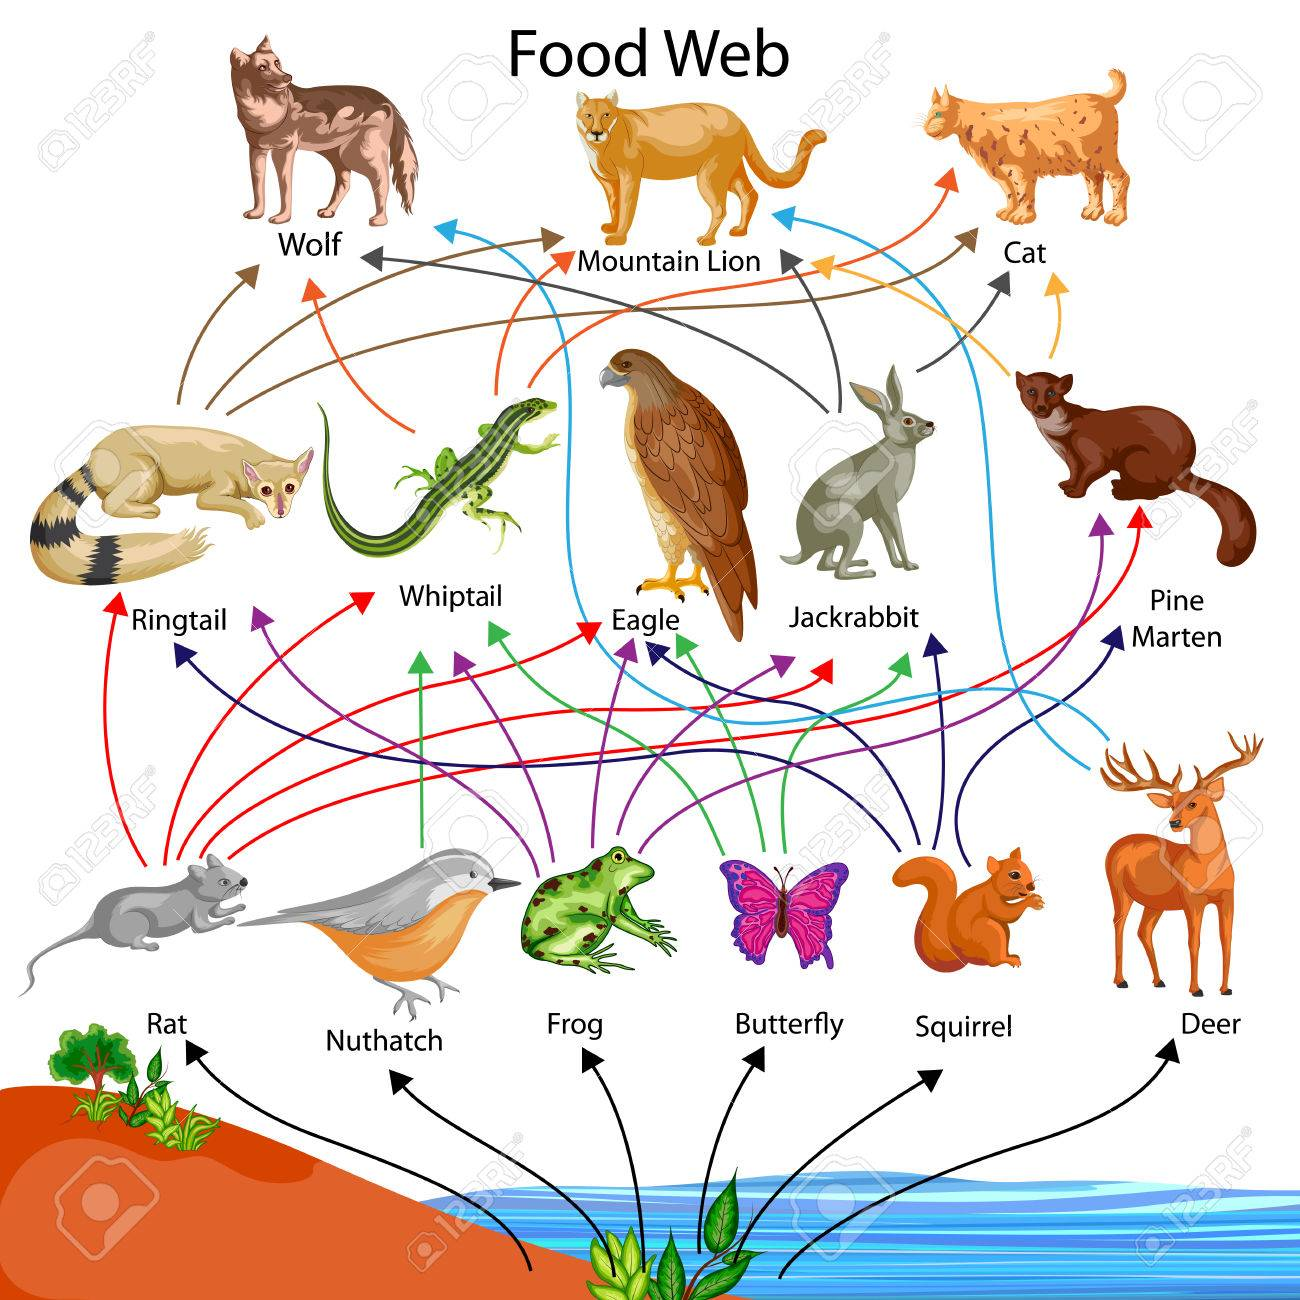 Ecosystem Food Chain Examples Diagram Free Image About Wiring And Schematic Desert Biome Schematics Diagrams 1060x1060